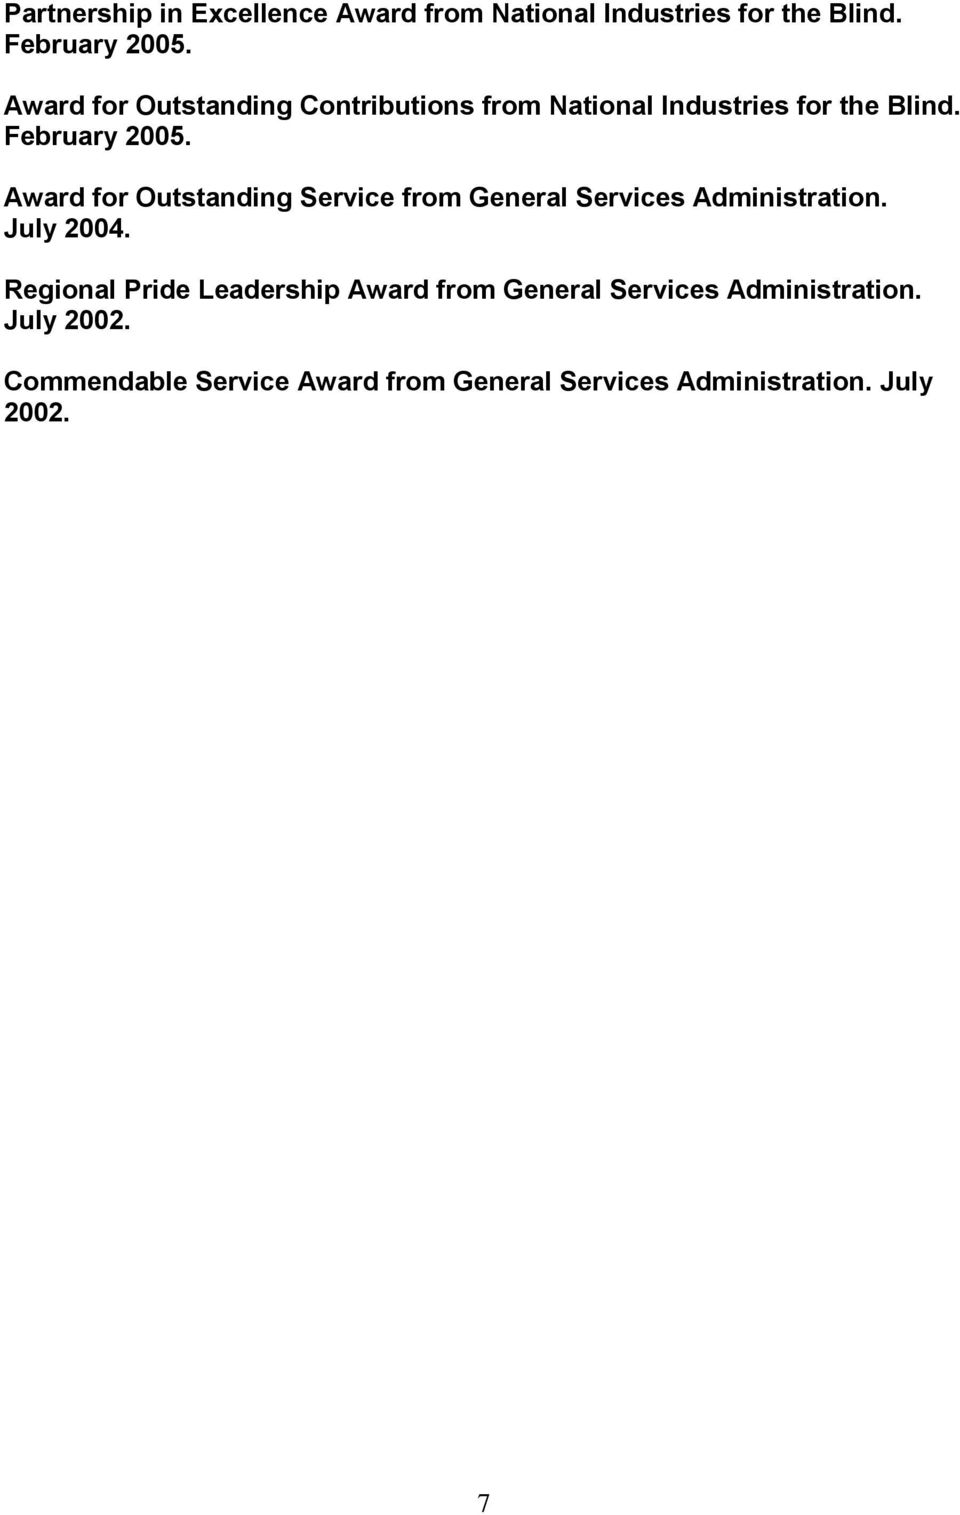 Award for Outstanding Service from General Services Administration. July 2004.